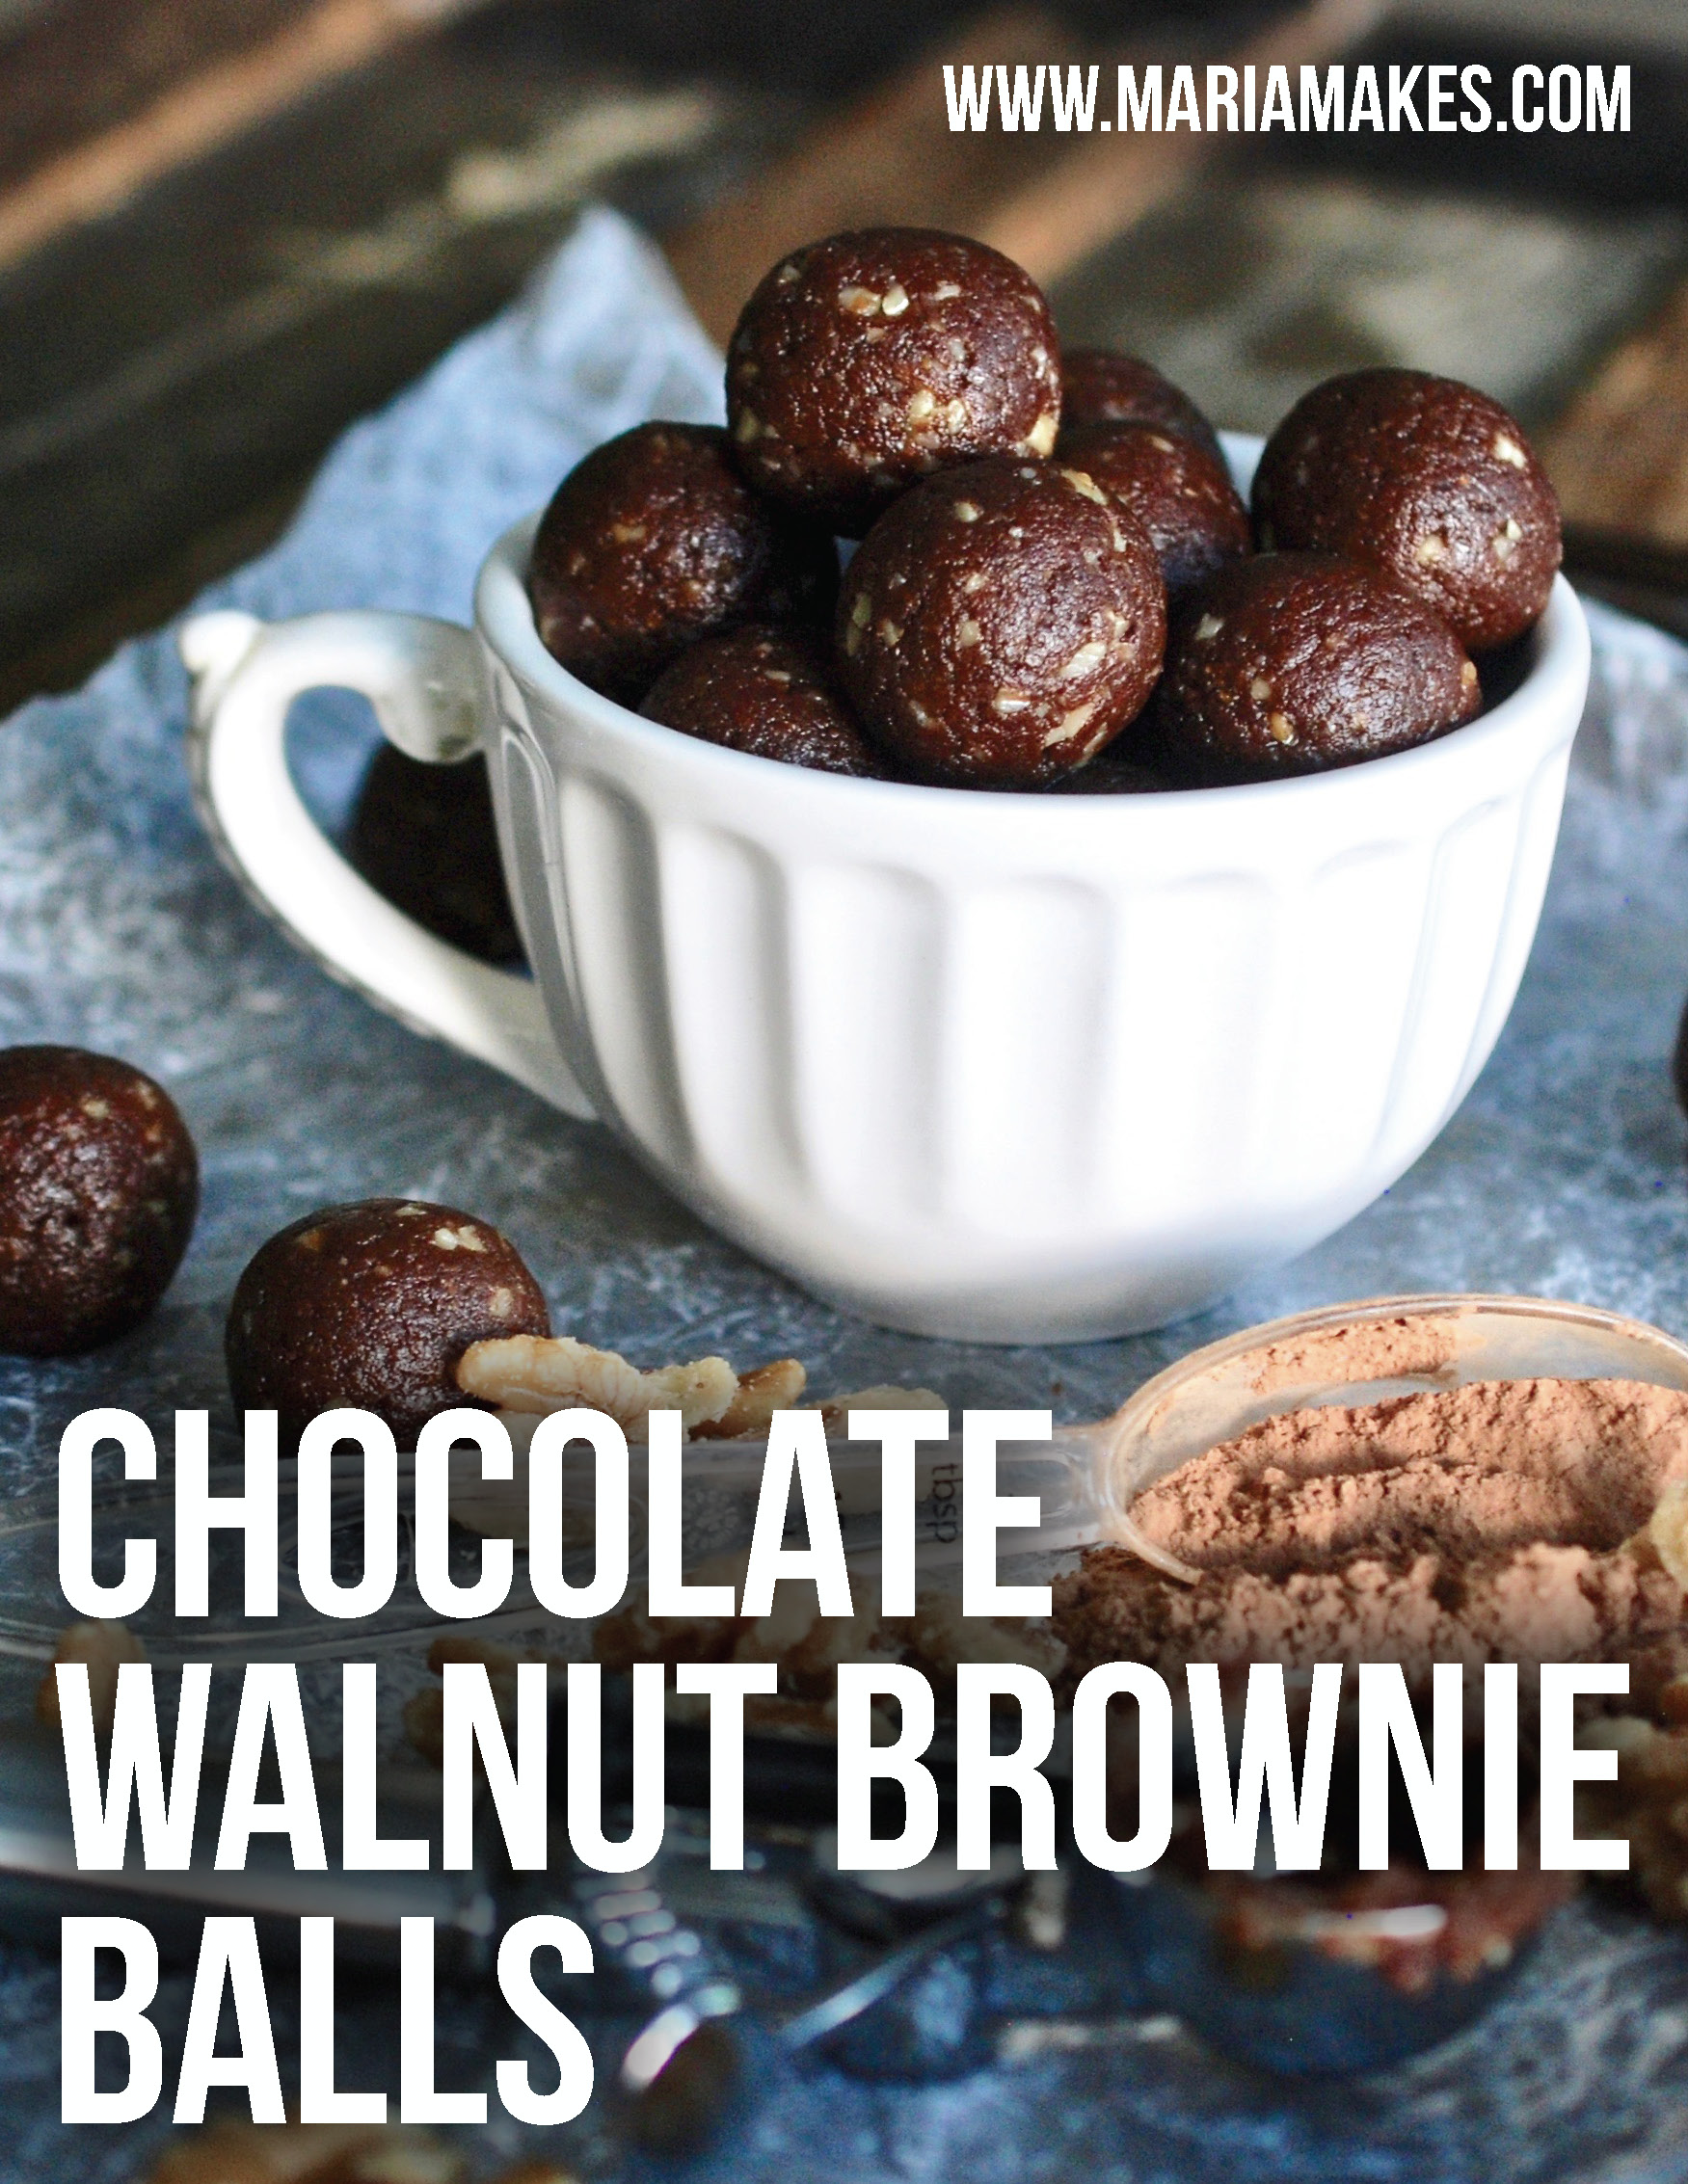 Chocolate Walnut Brownie Balls – Maria Makes: Fudgy brownie goodness but with nutritious and unprocessed ingredients! Energy balls made with almond flour, dates, cacao powder, salt, vanilla extract, and water.